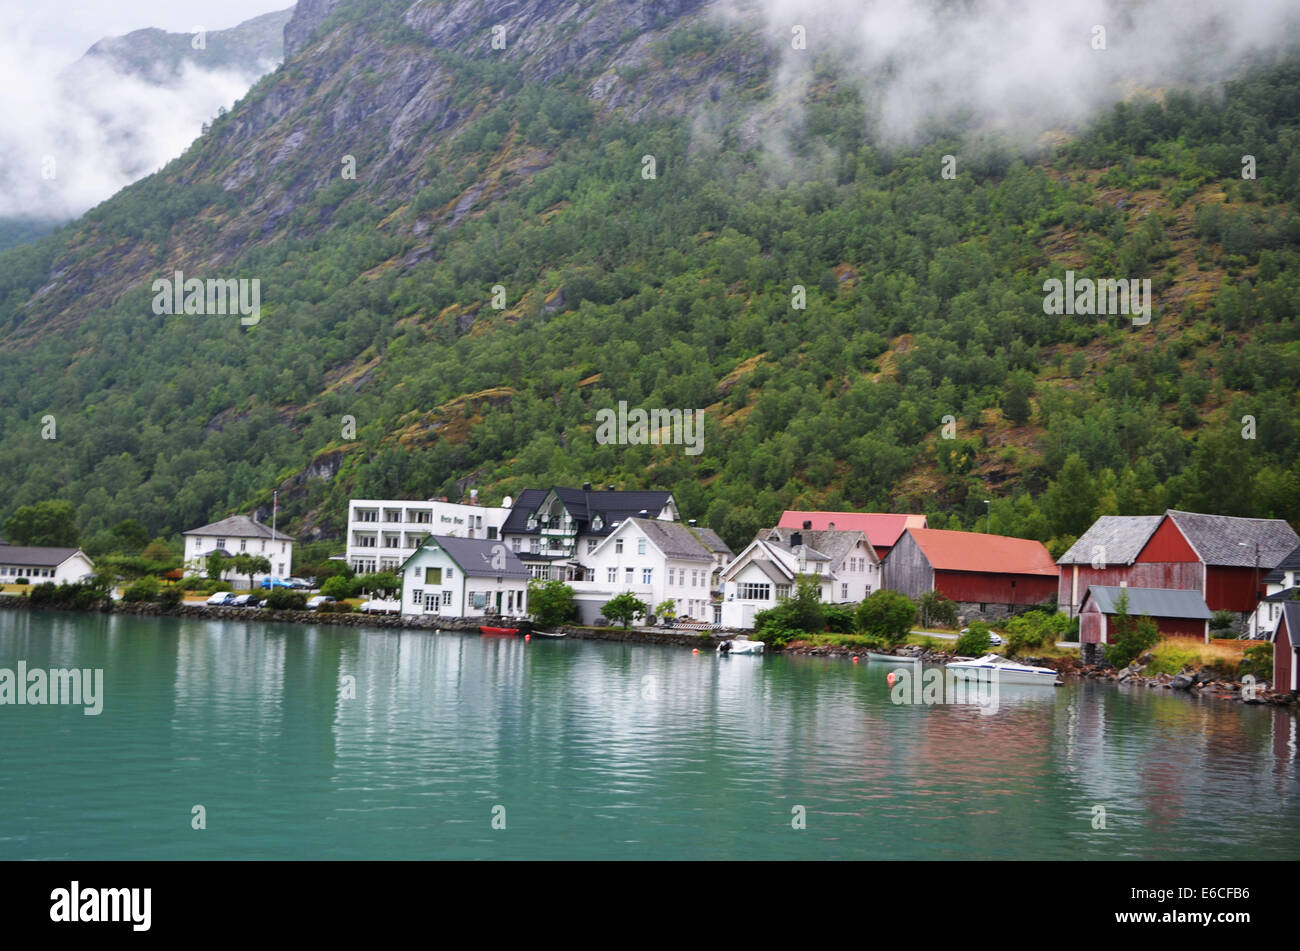 A bus tour begins with a village with pretty houses by the lakeside. - Stock Image